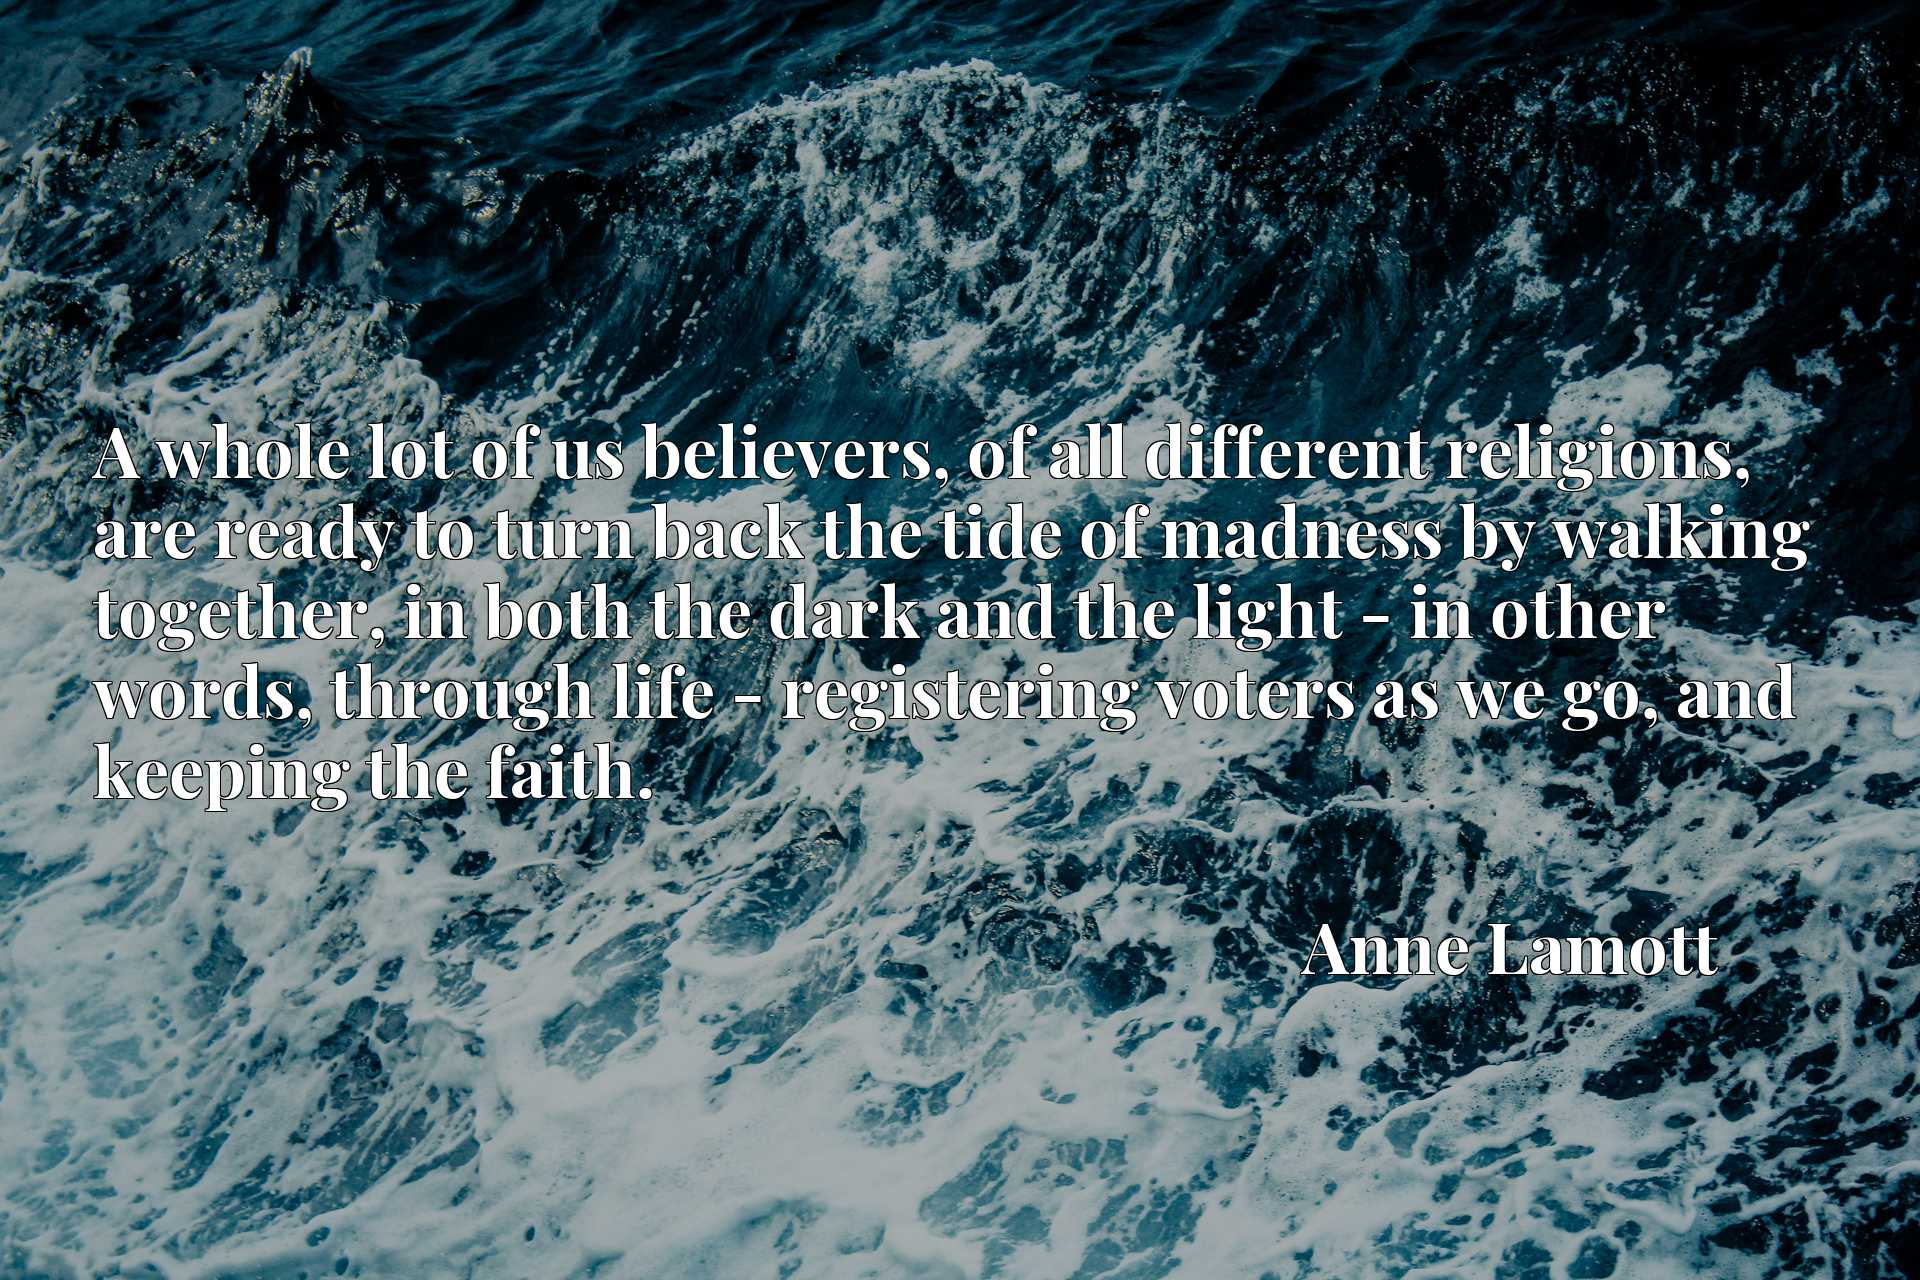 A whole lot of us believers, of all different religions, are ready to turn back the tide of madness by walking together, in both the dark and the light - in other words, through life - registering voters as we go, and keeping the faith.